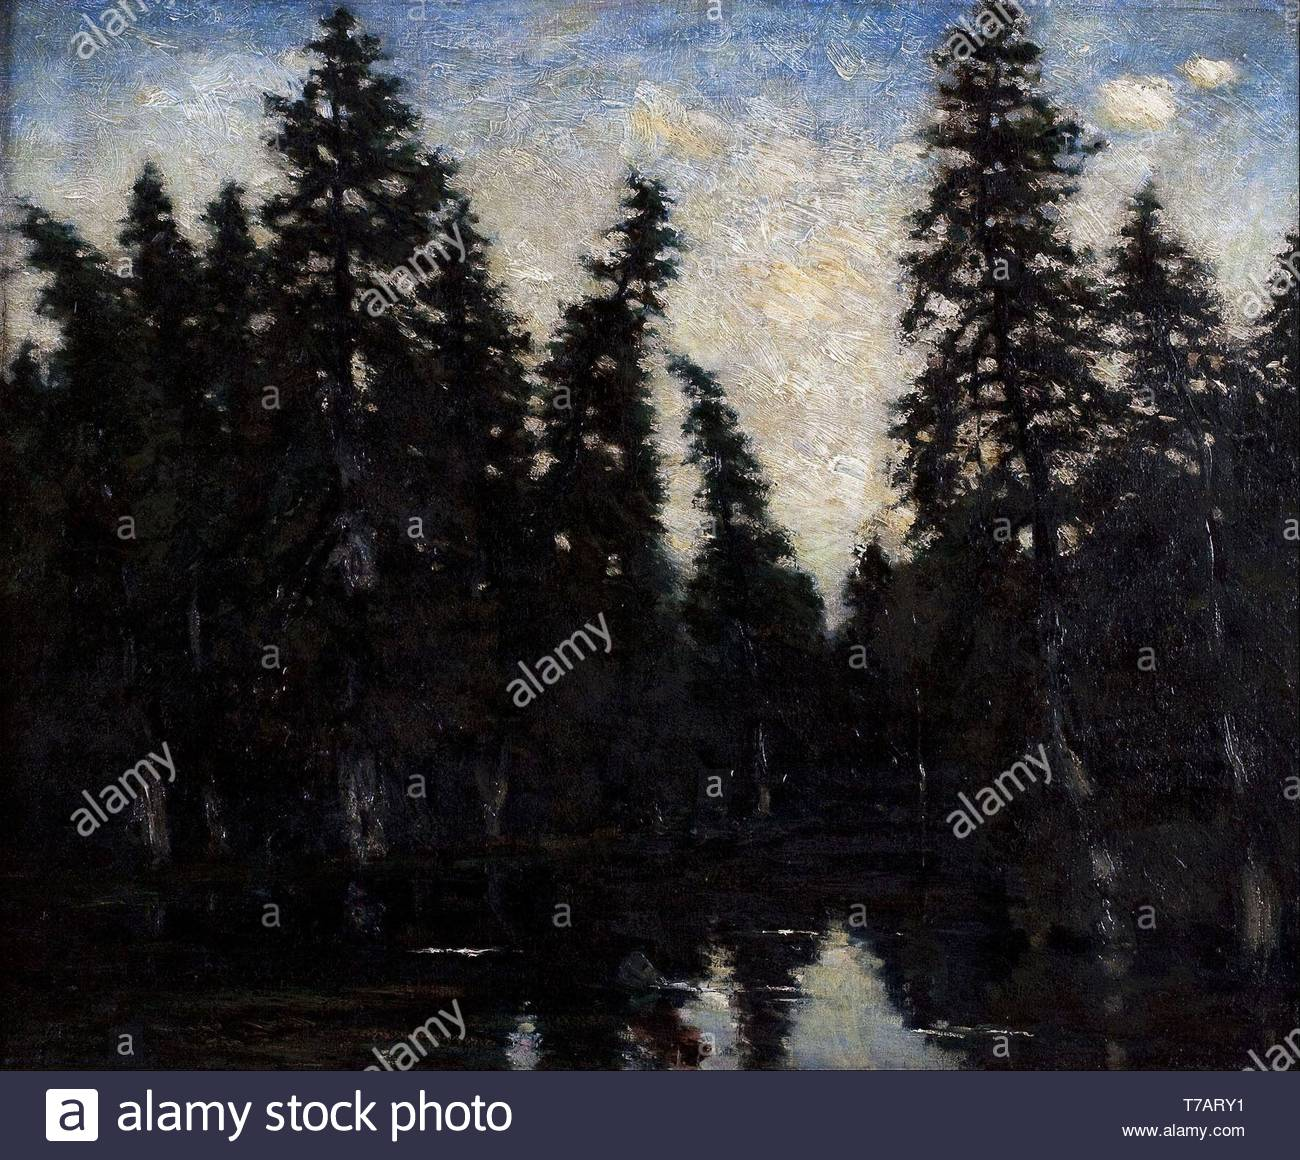 Carl-Fredrik-Hill-The black spruces - Stock Image